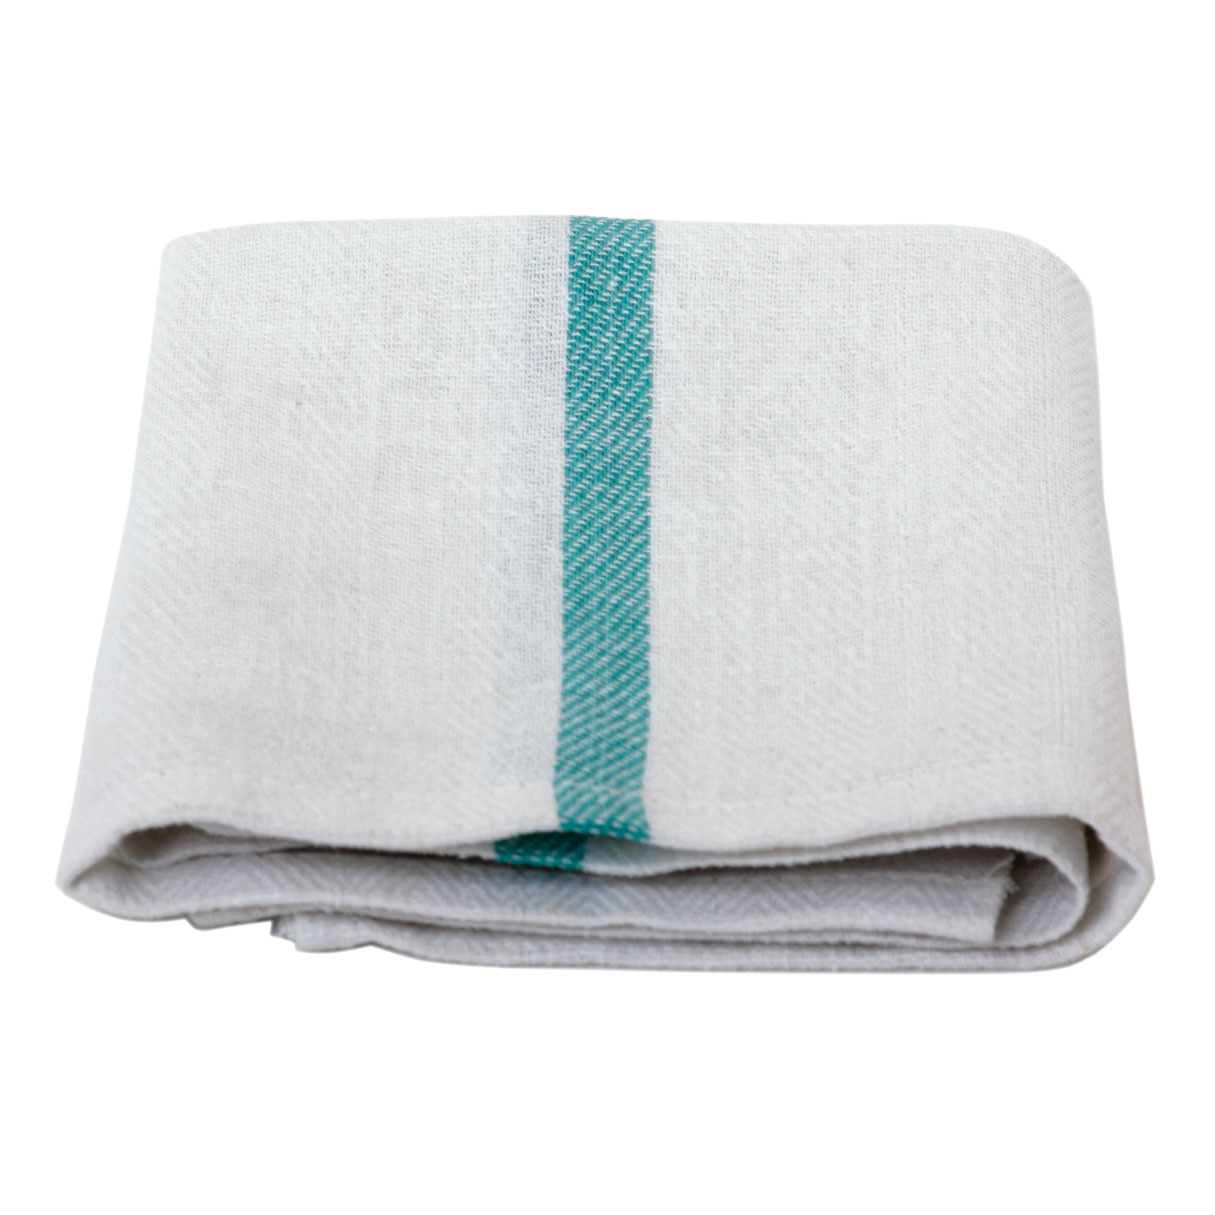 Royal Industries RHB towel, bar